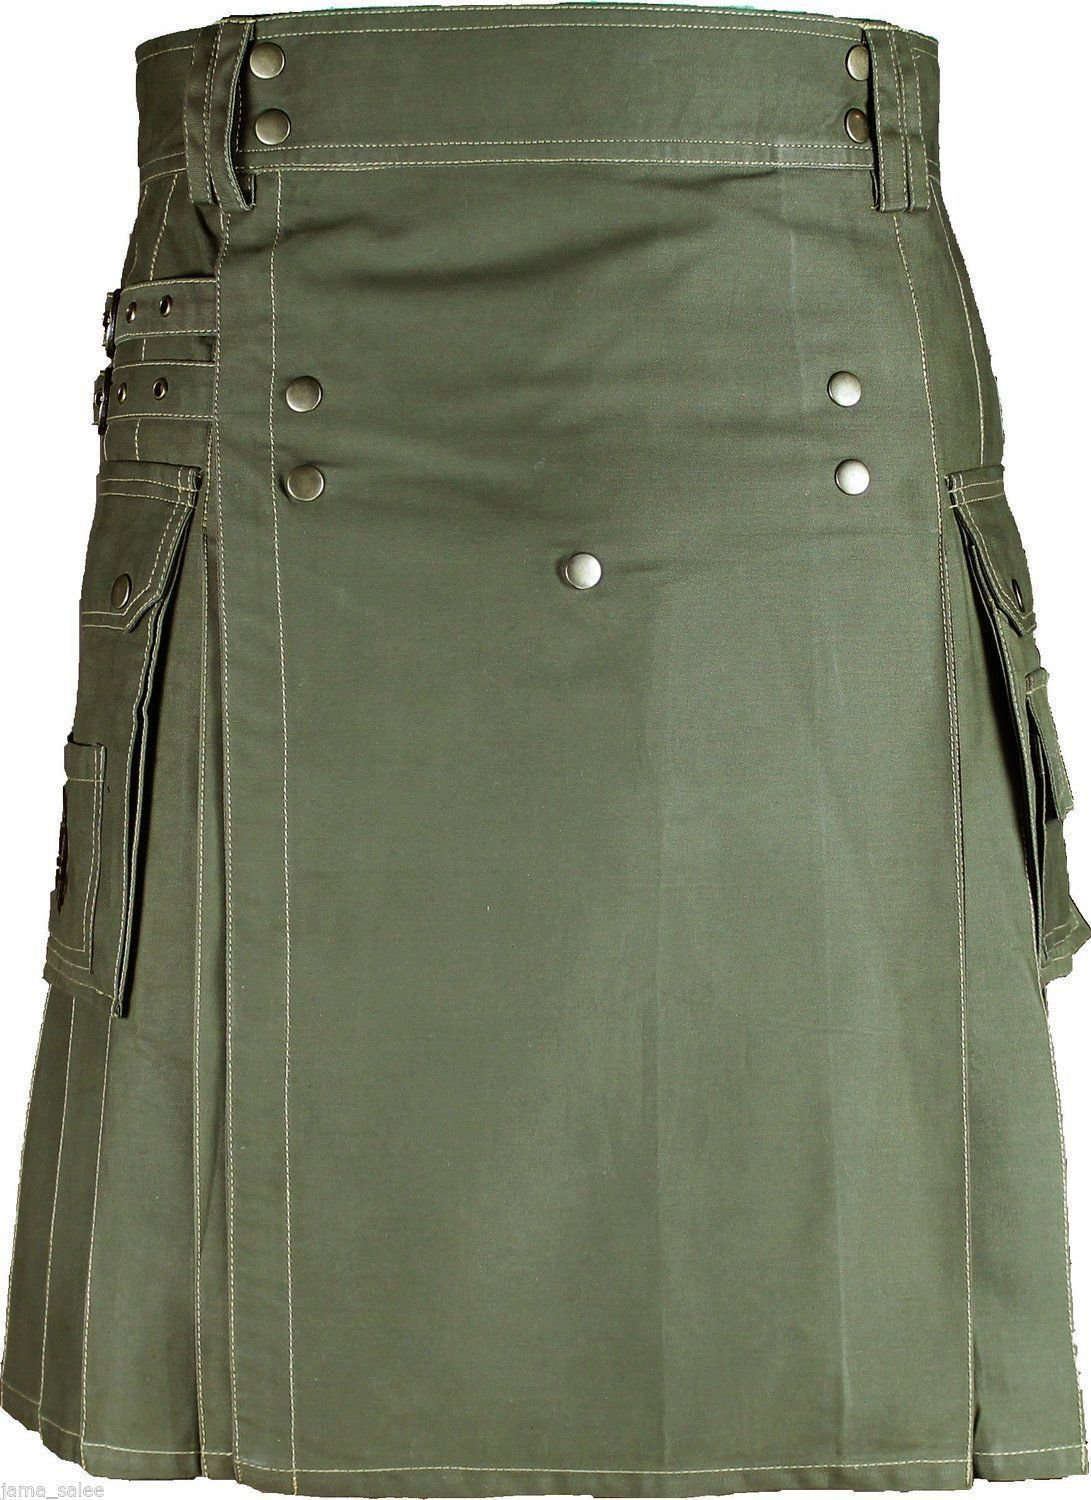 Size 38 Handmade Modern Utility Olive Green Cotton Kilt With Big Cargo Pockets Brass Materials